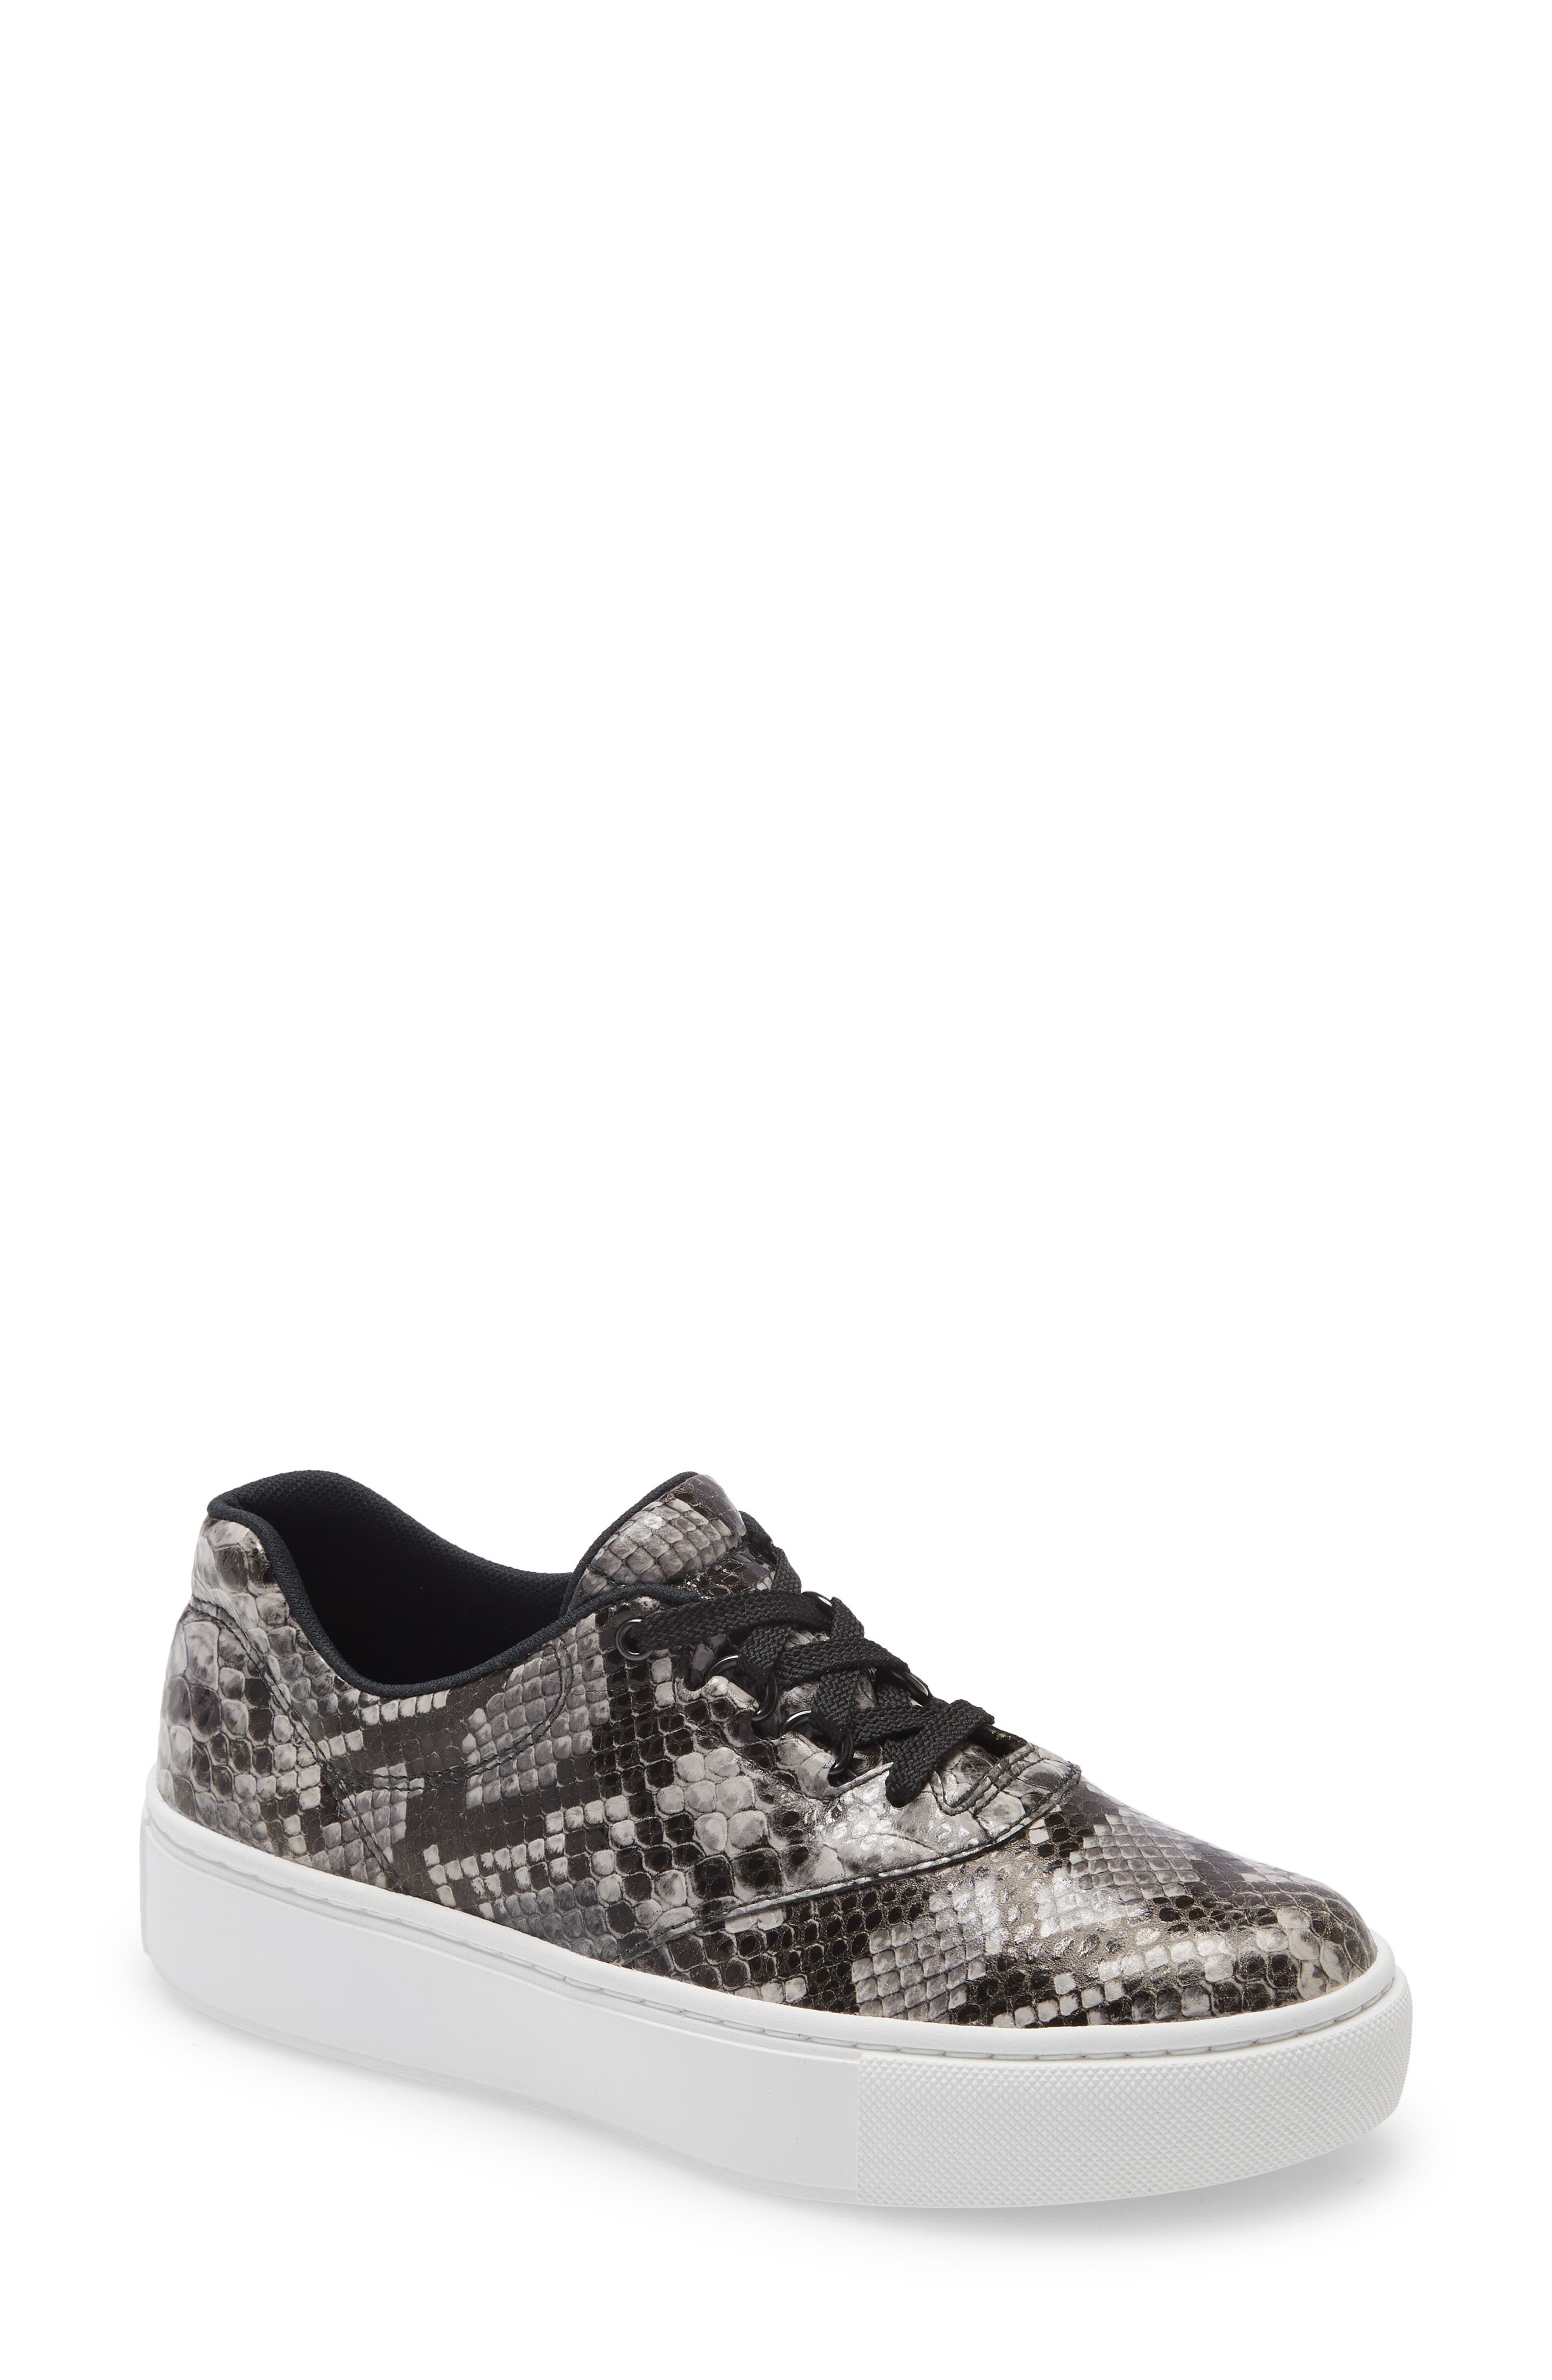 A speckled platform adds fashionable lift to a fan-favorite sneaker designed with a roomy toe box, anti-microbial moisture-wicking lining and cushy footbed. Style Name: Sas Free Rein Platform Sneaker (Women). Style Number: 6161294. Available in stores.